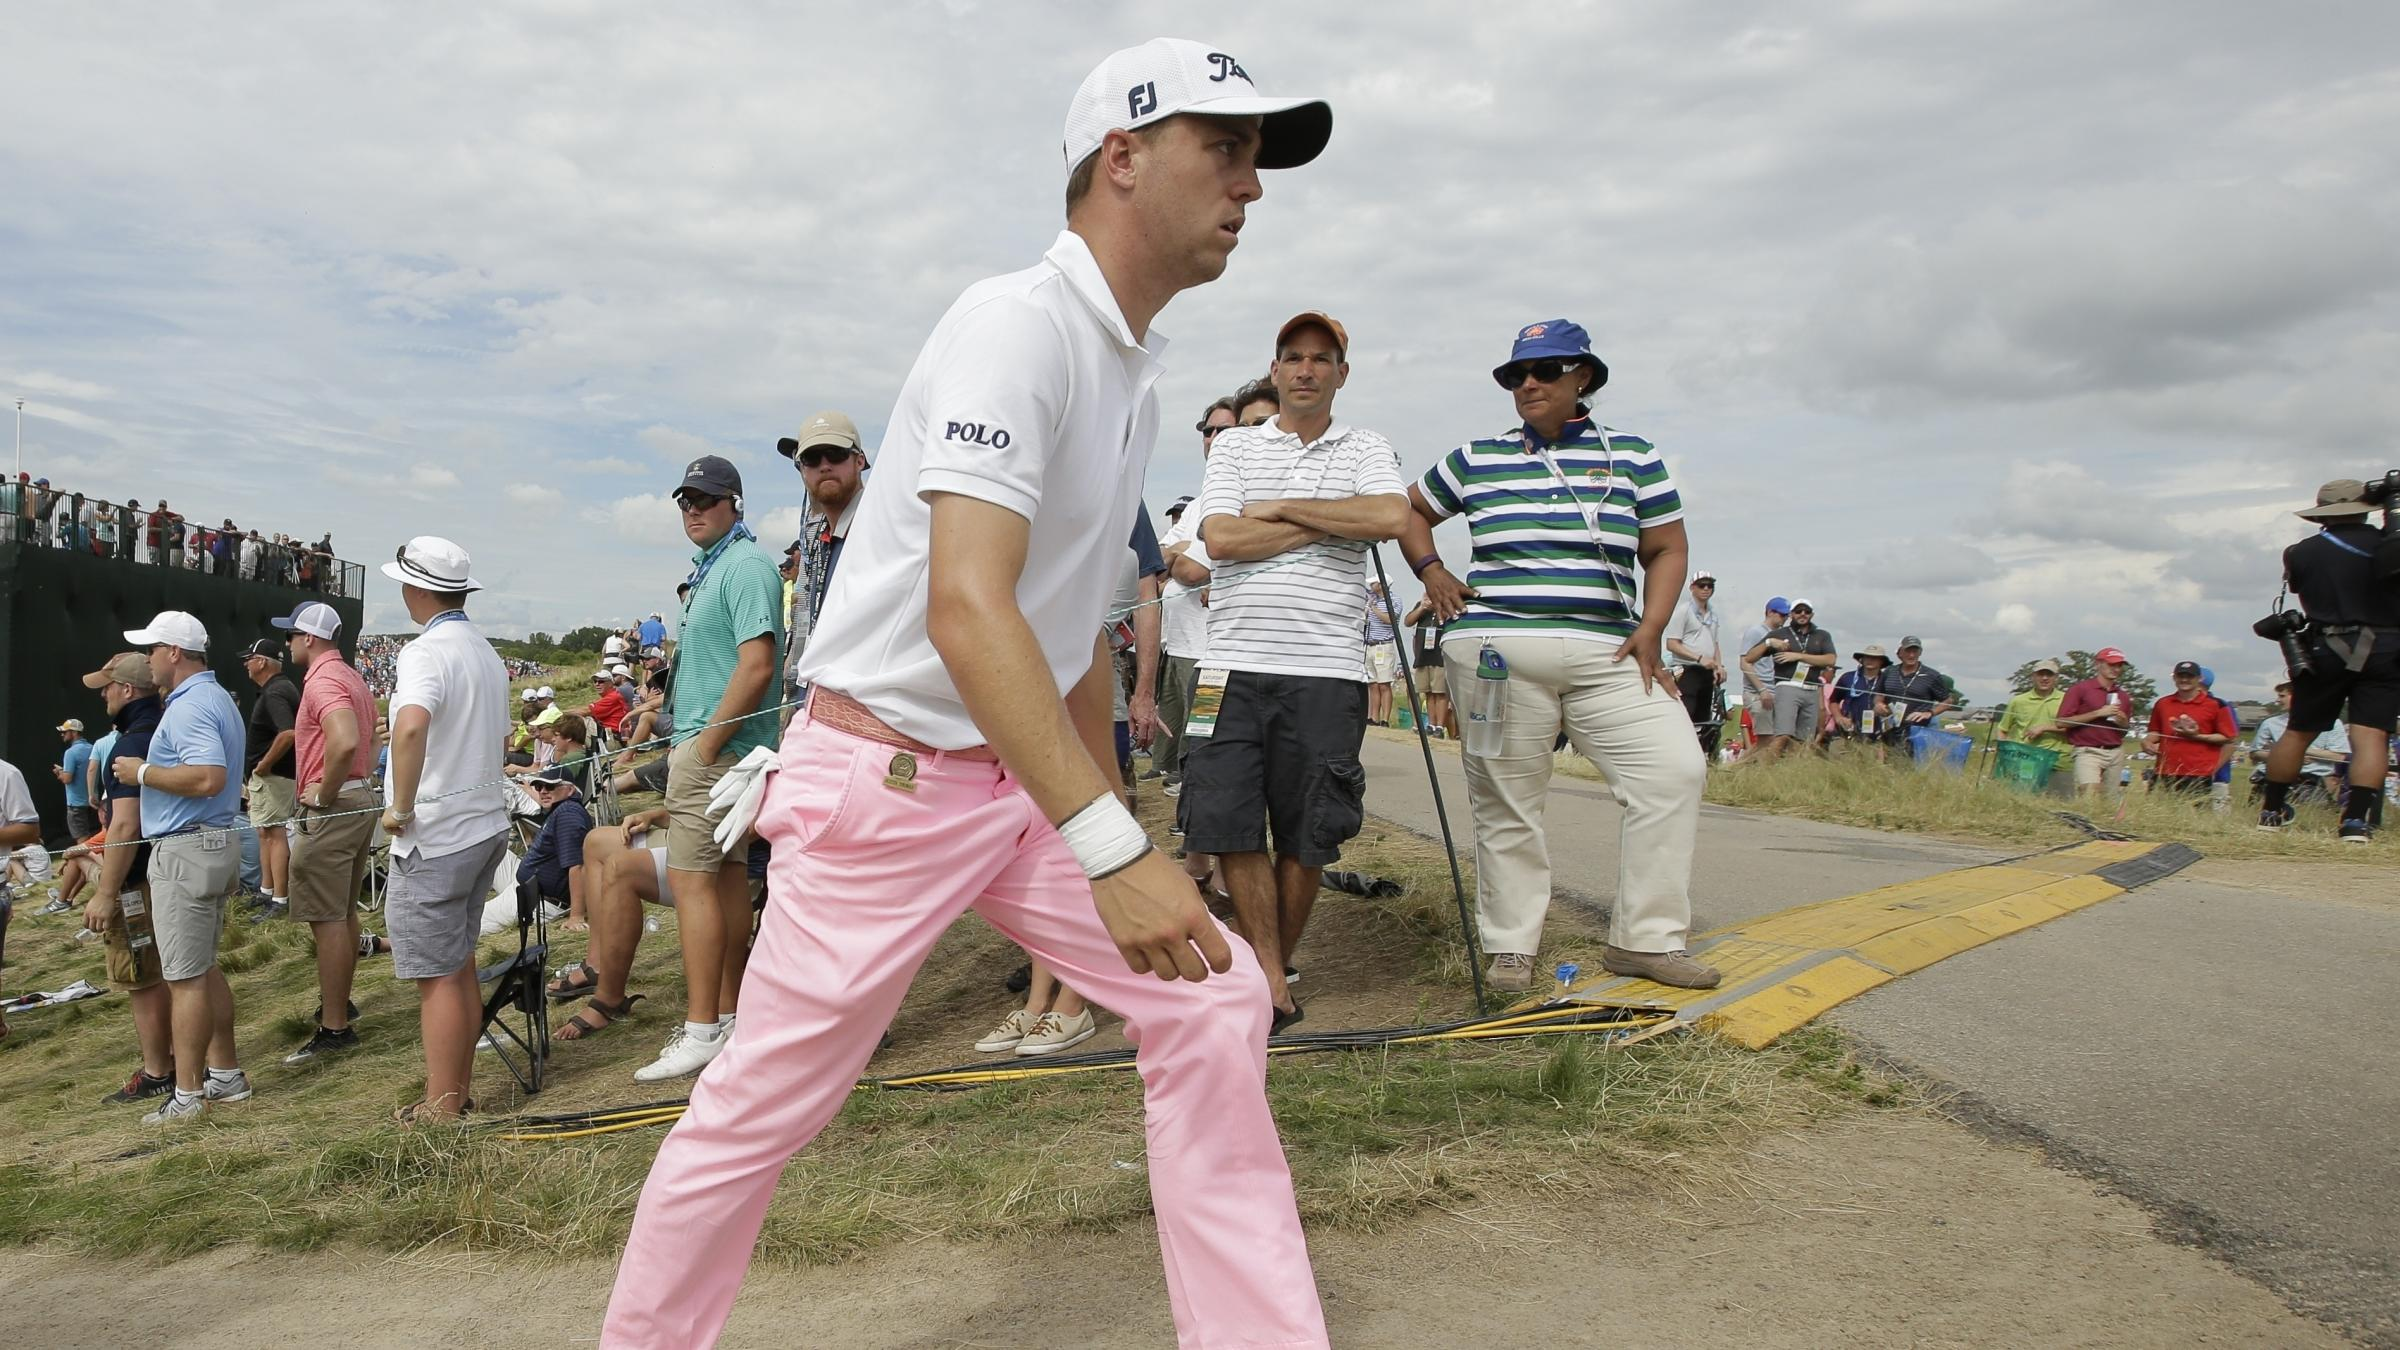 USOpen: Four-way tie at Erin Hills